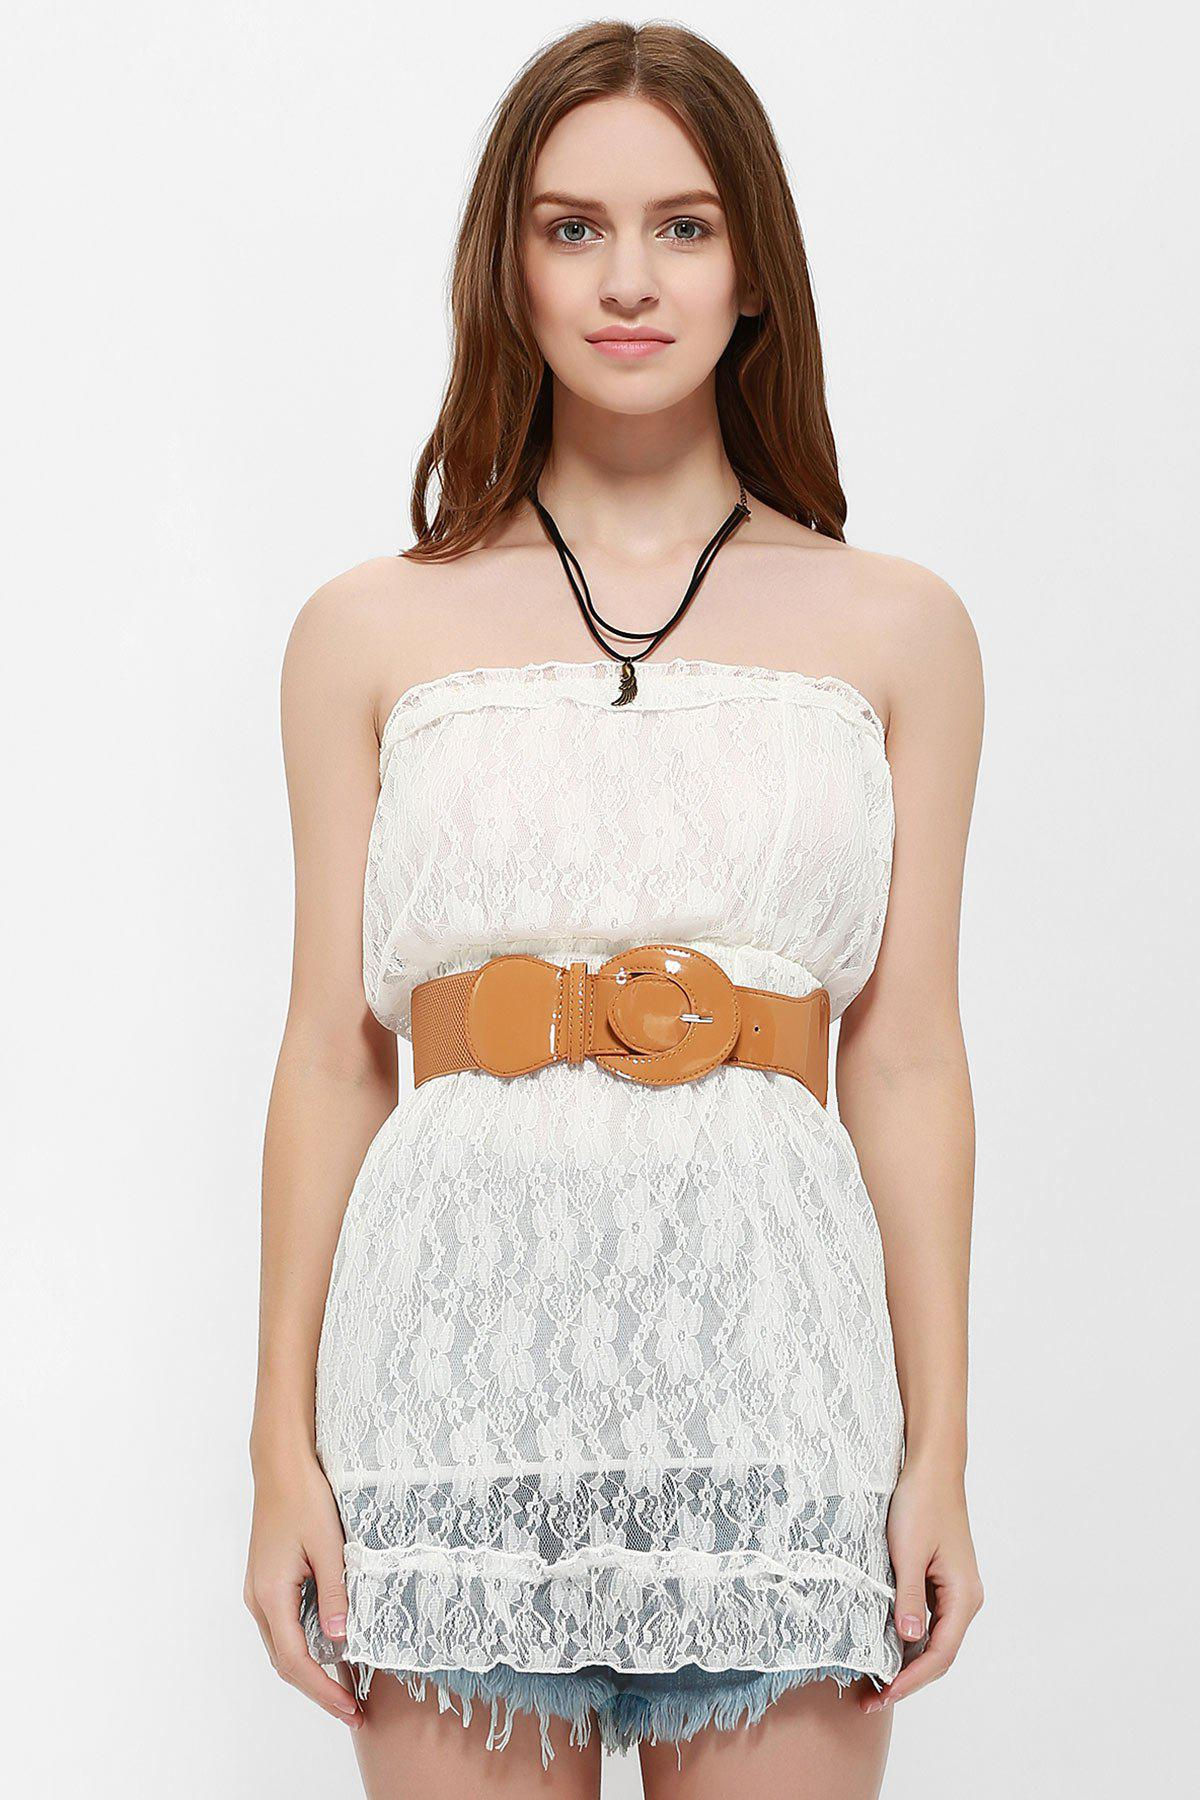 Graceful Style Strapless Mini Lace Dress For Women - ONE SIZE WHITE